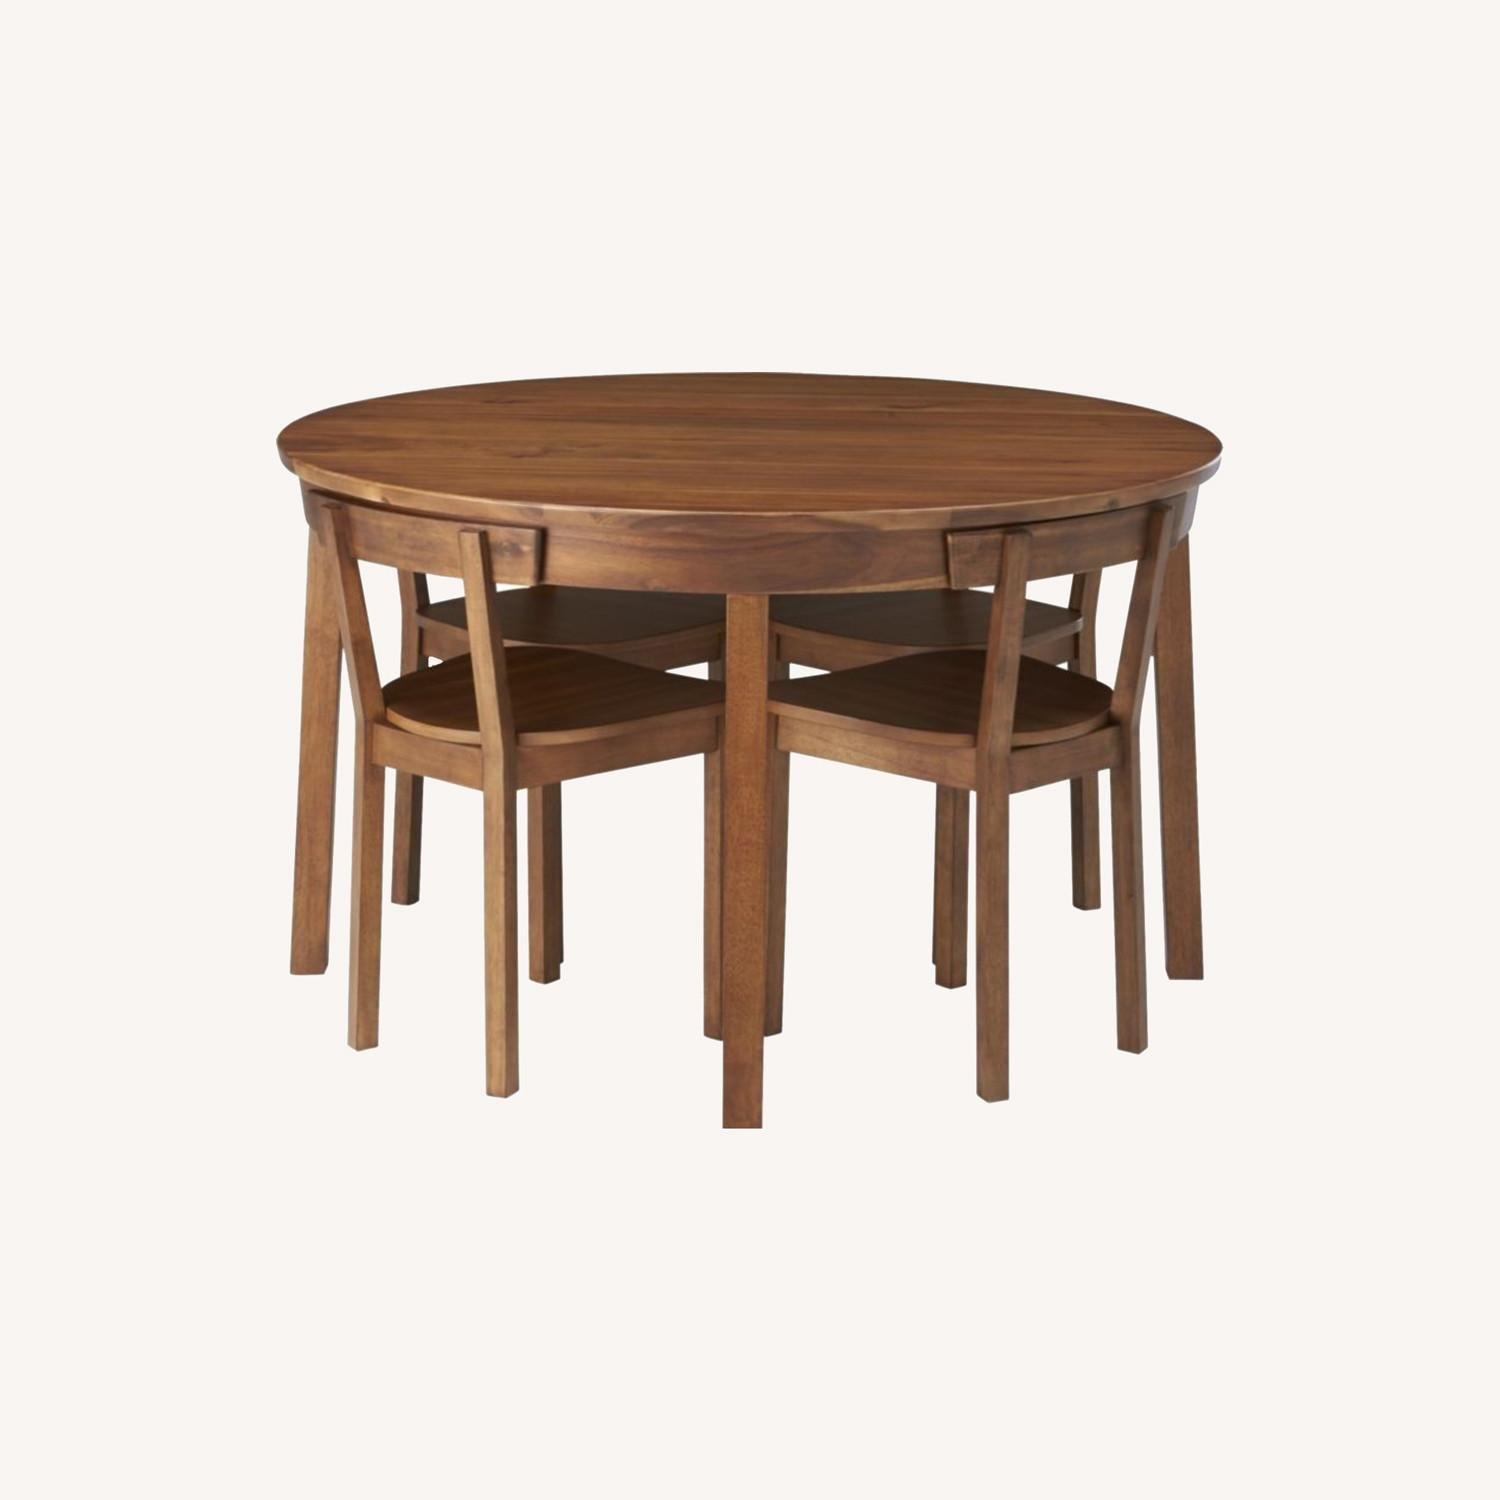 CB2 Round Dining Table w/ 4 Inlaid Chairs - image-0